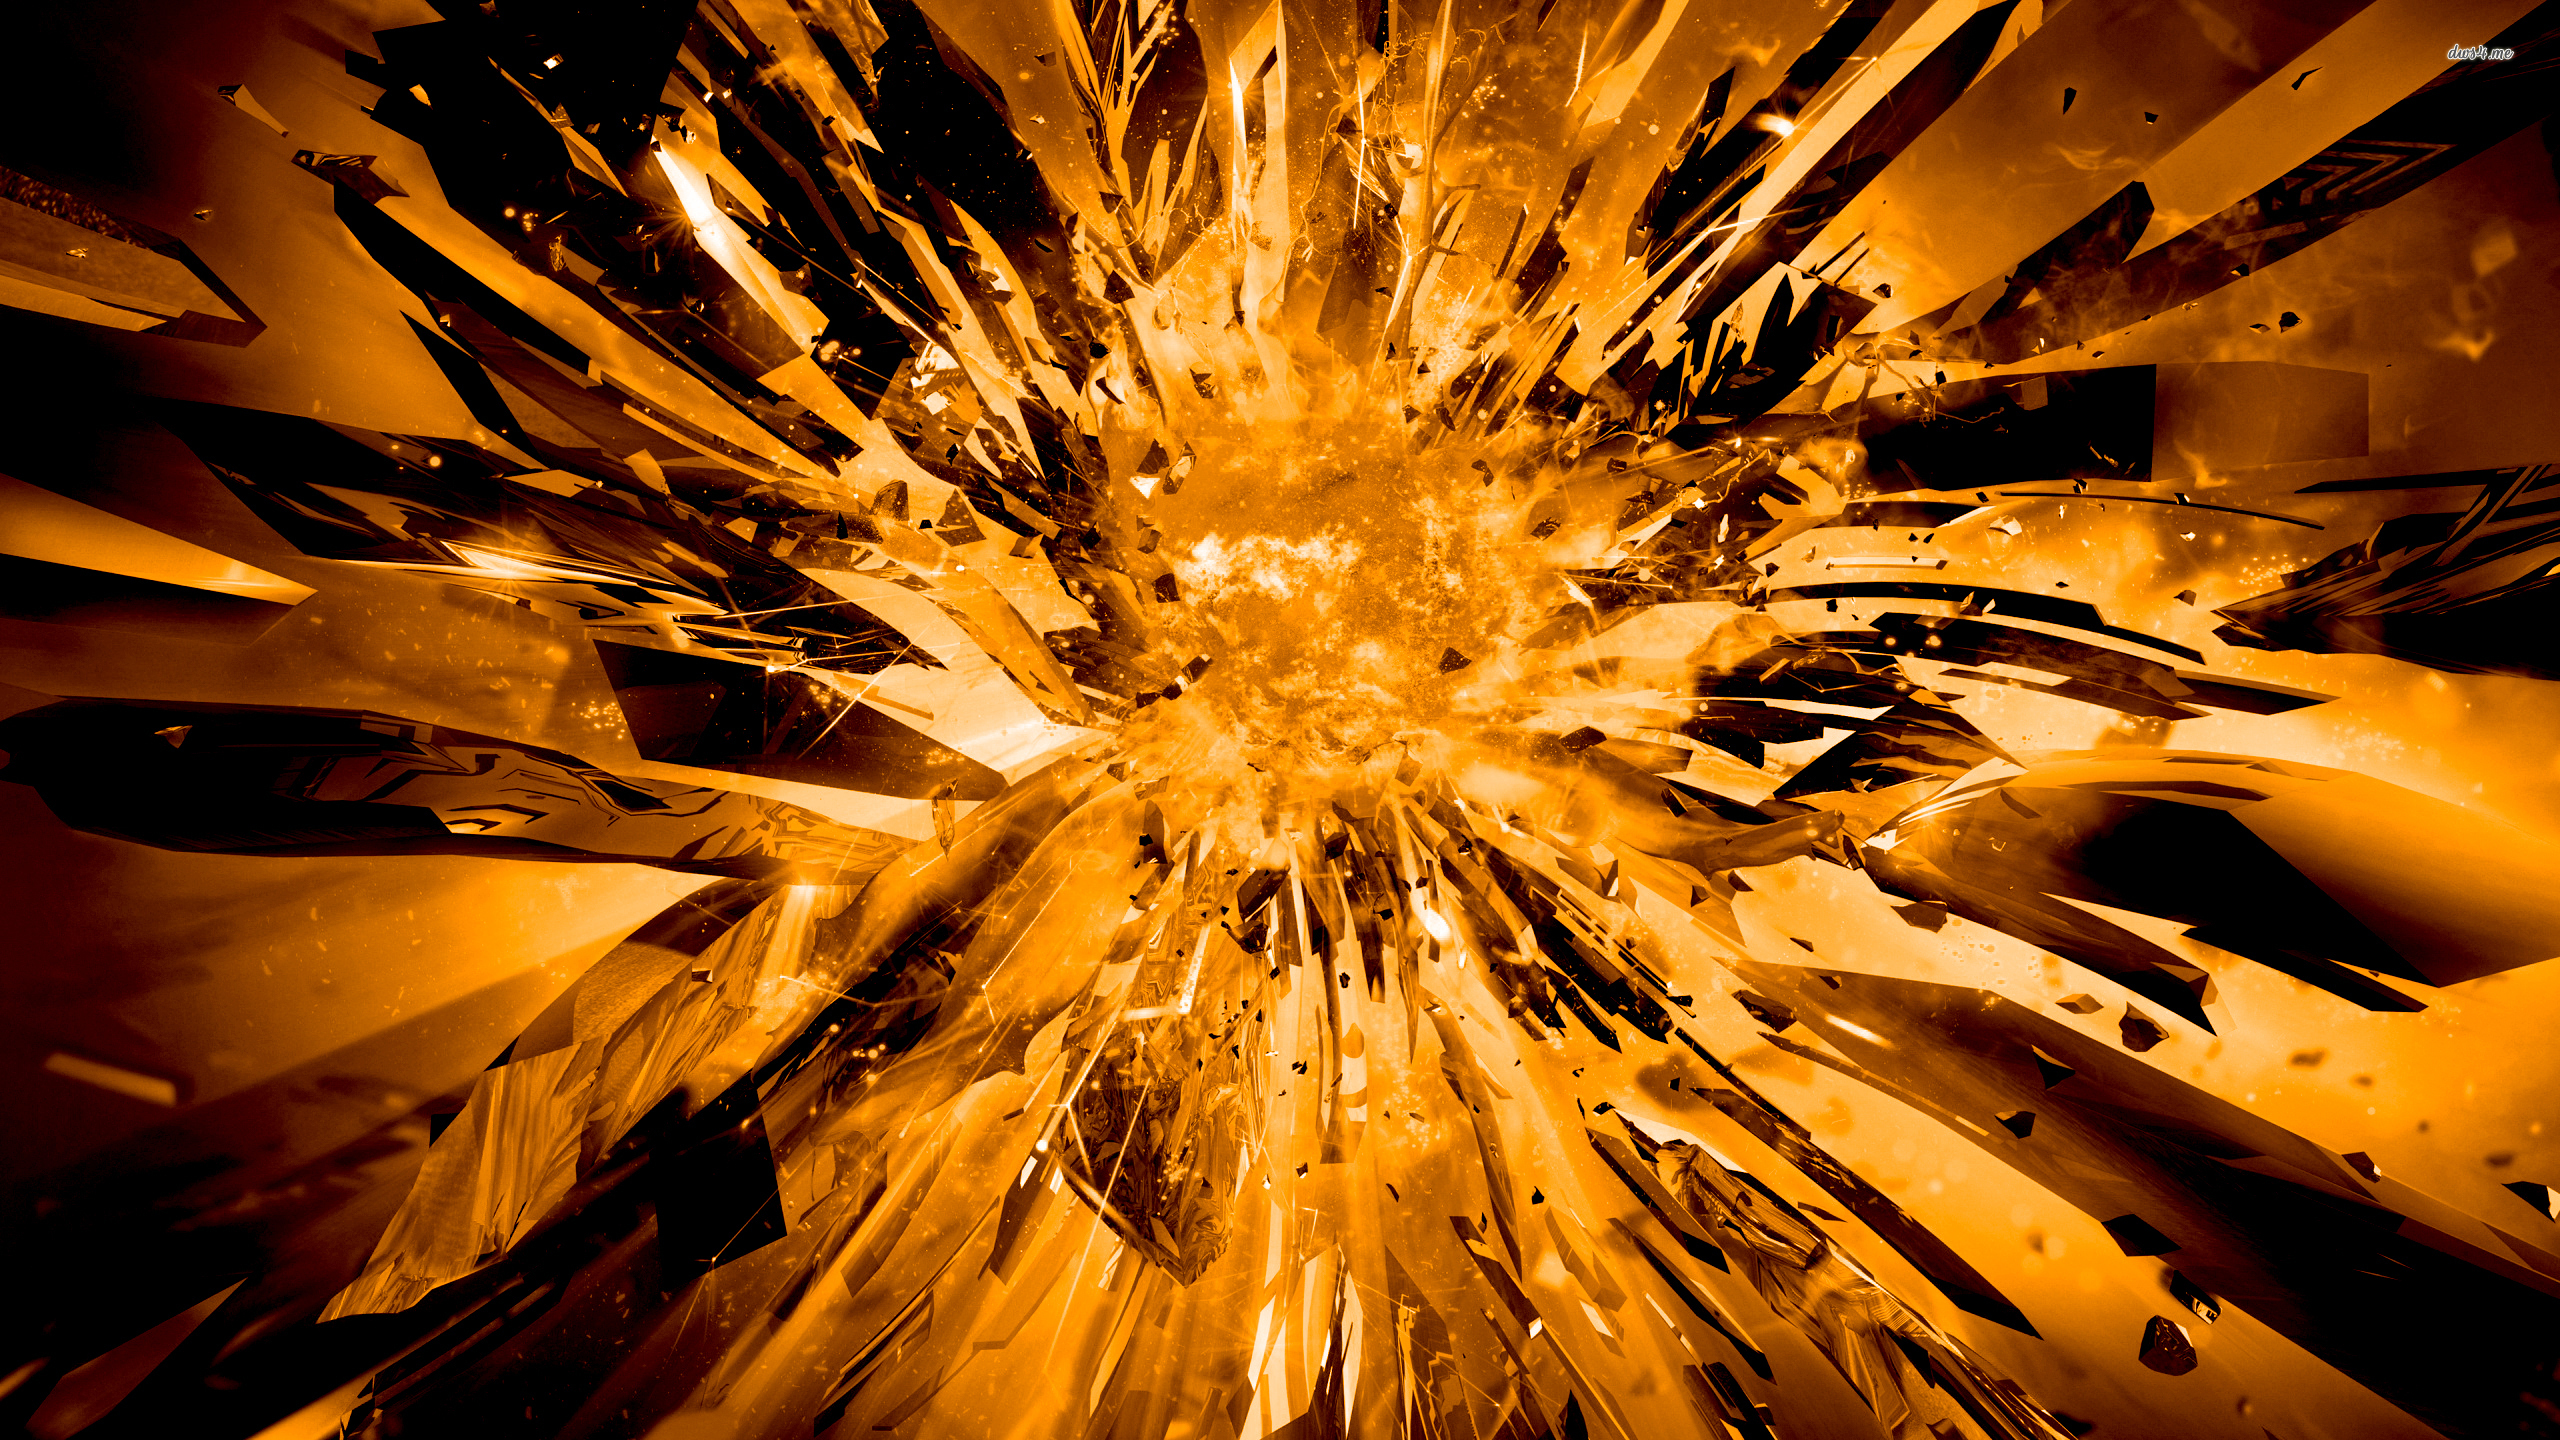 Explosion wallpapers full hd pictures - Explosion wallpaper ...